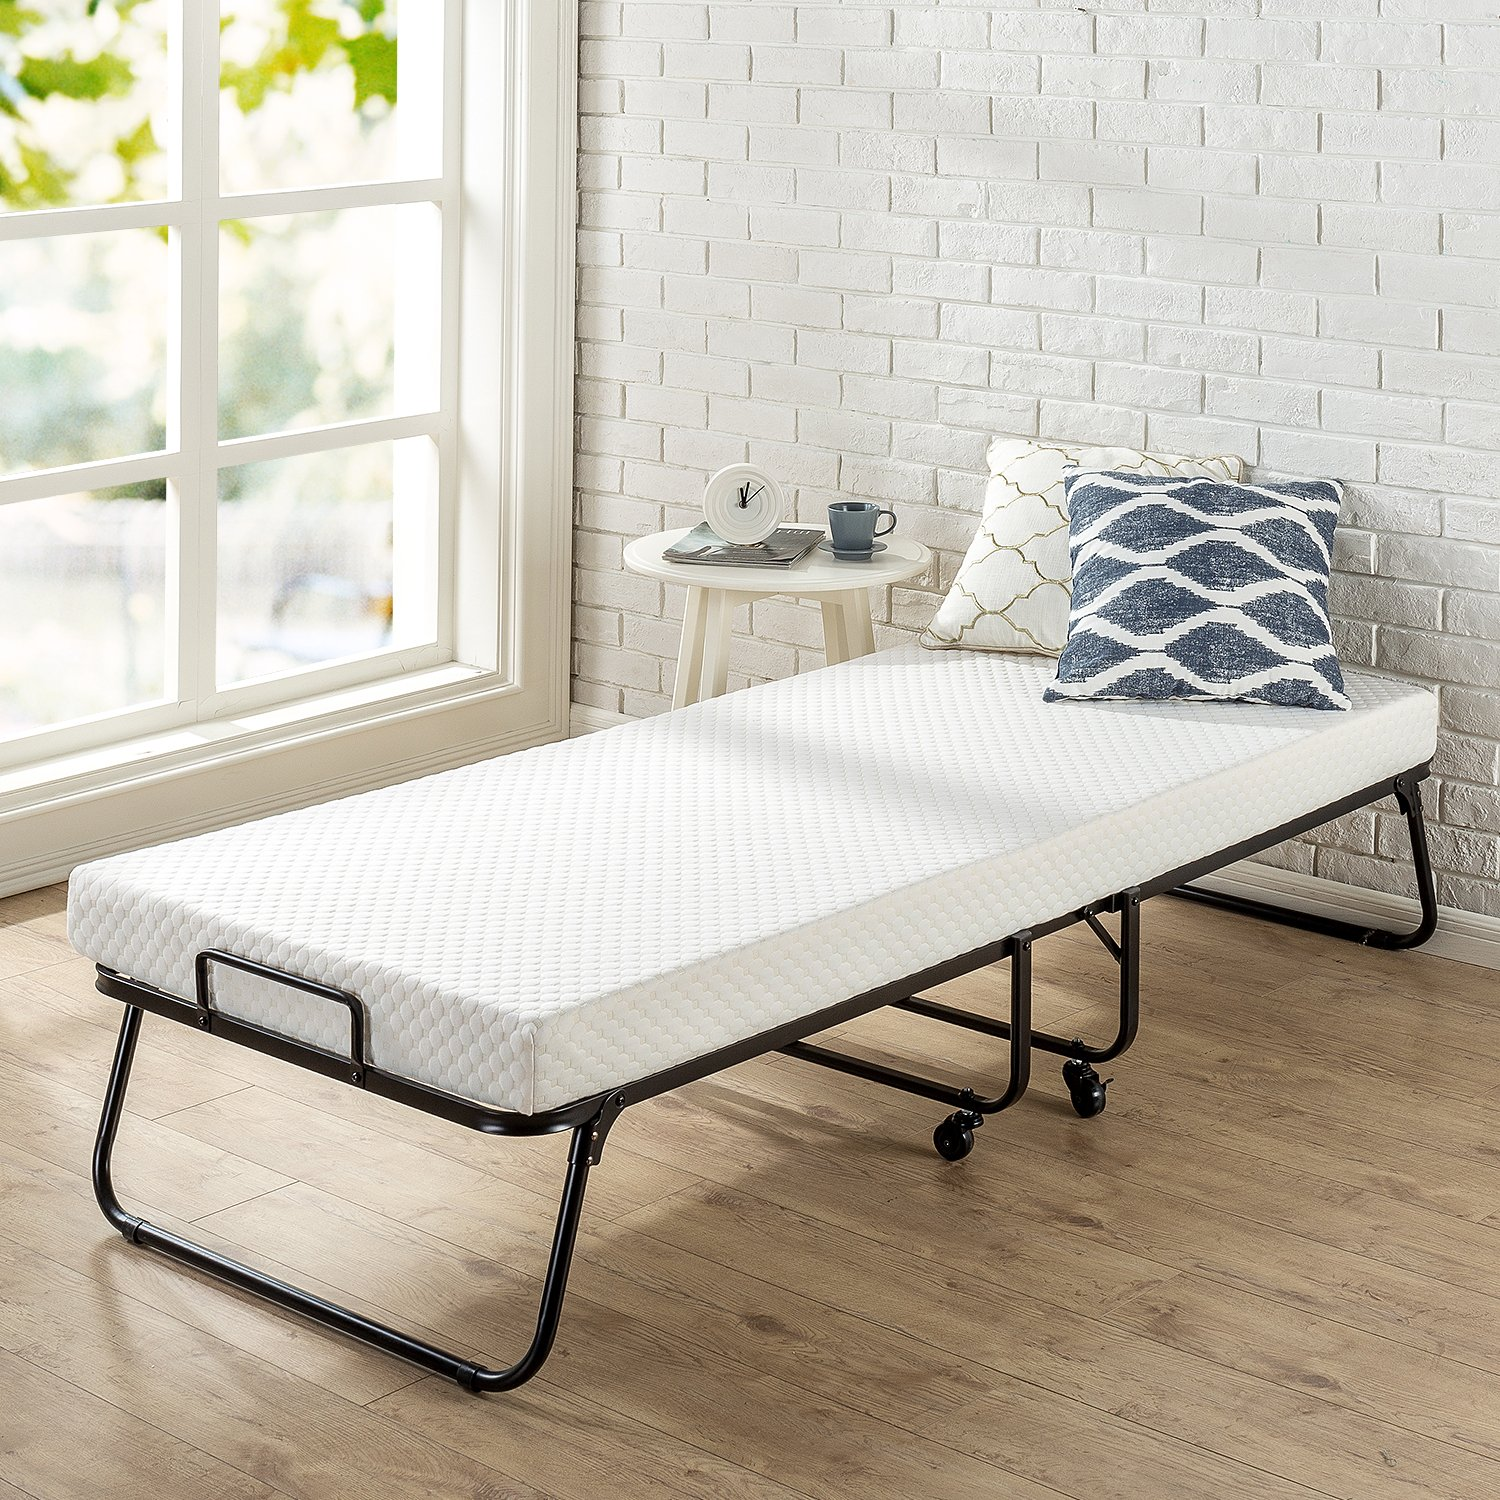 1. Zinus Roll Away Folding Guest Bed Frame with 4 Inch Comfort Foam Mattress, Narrow Twin / 30